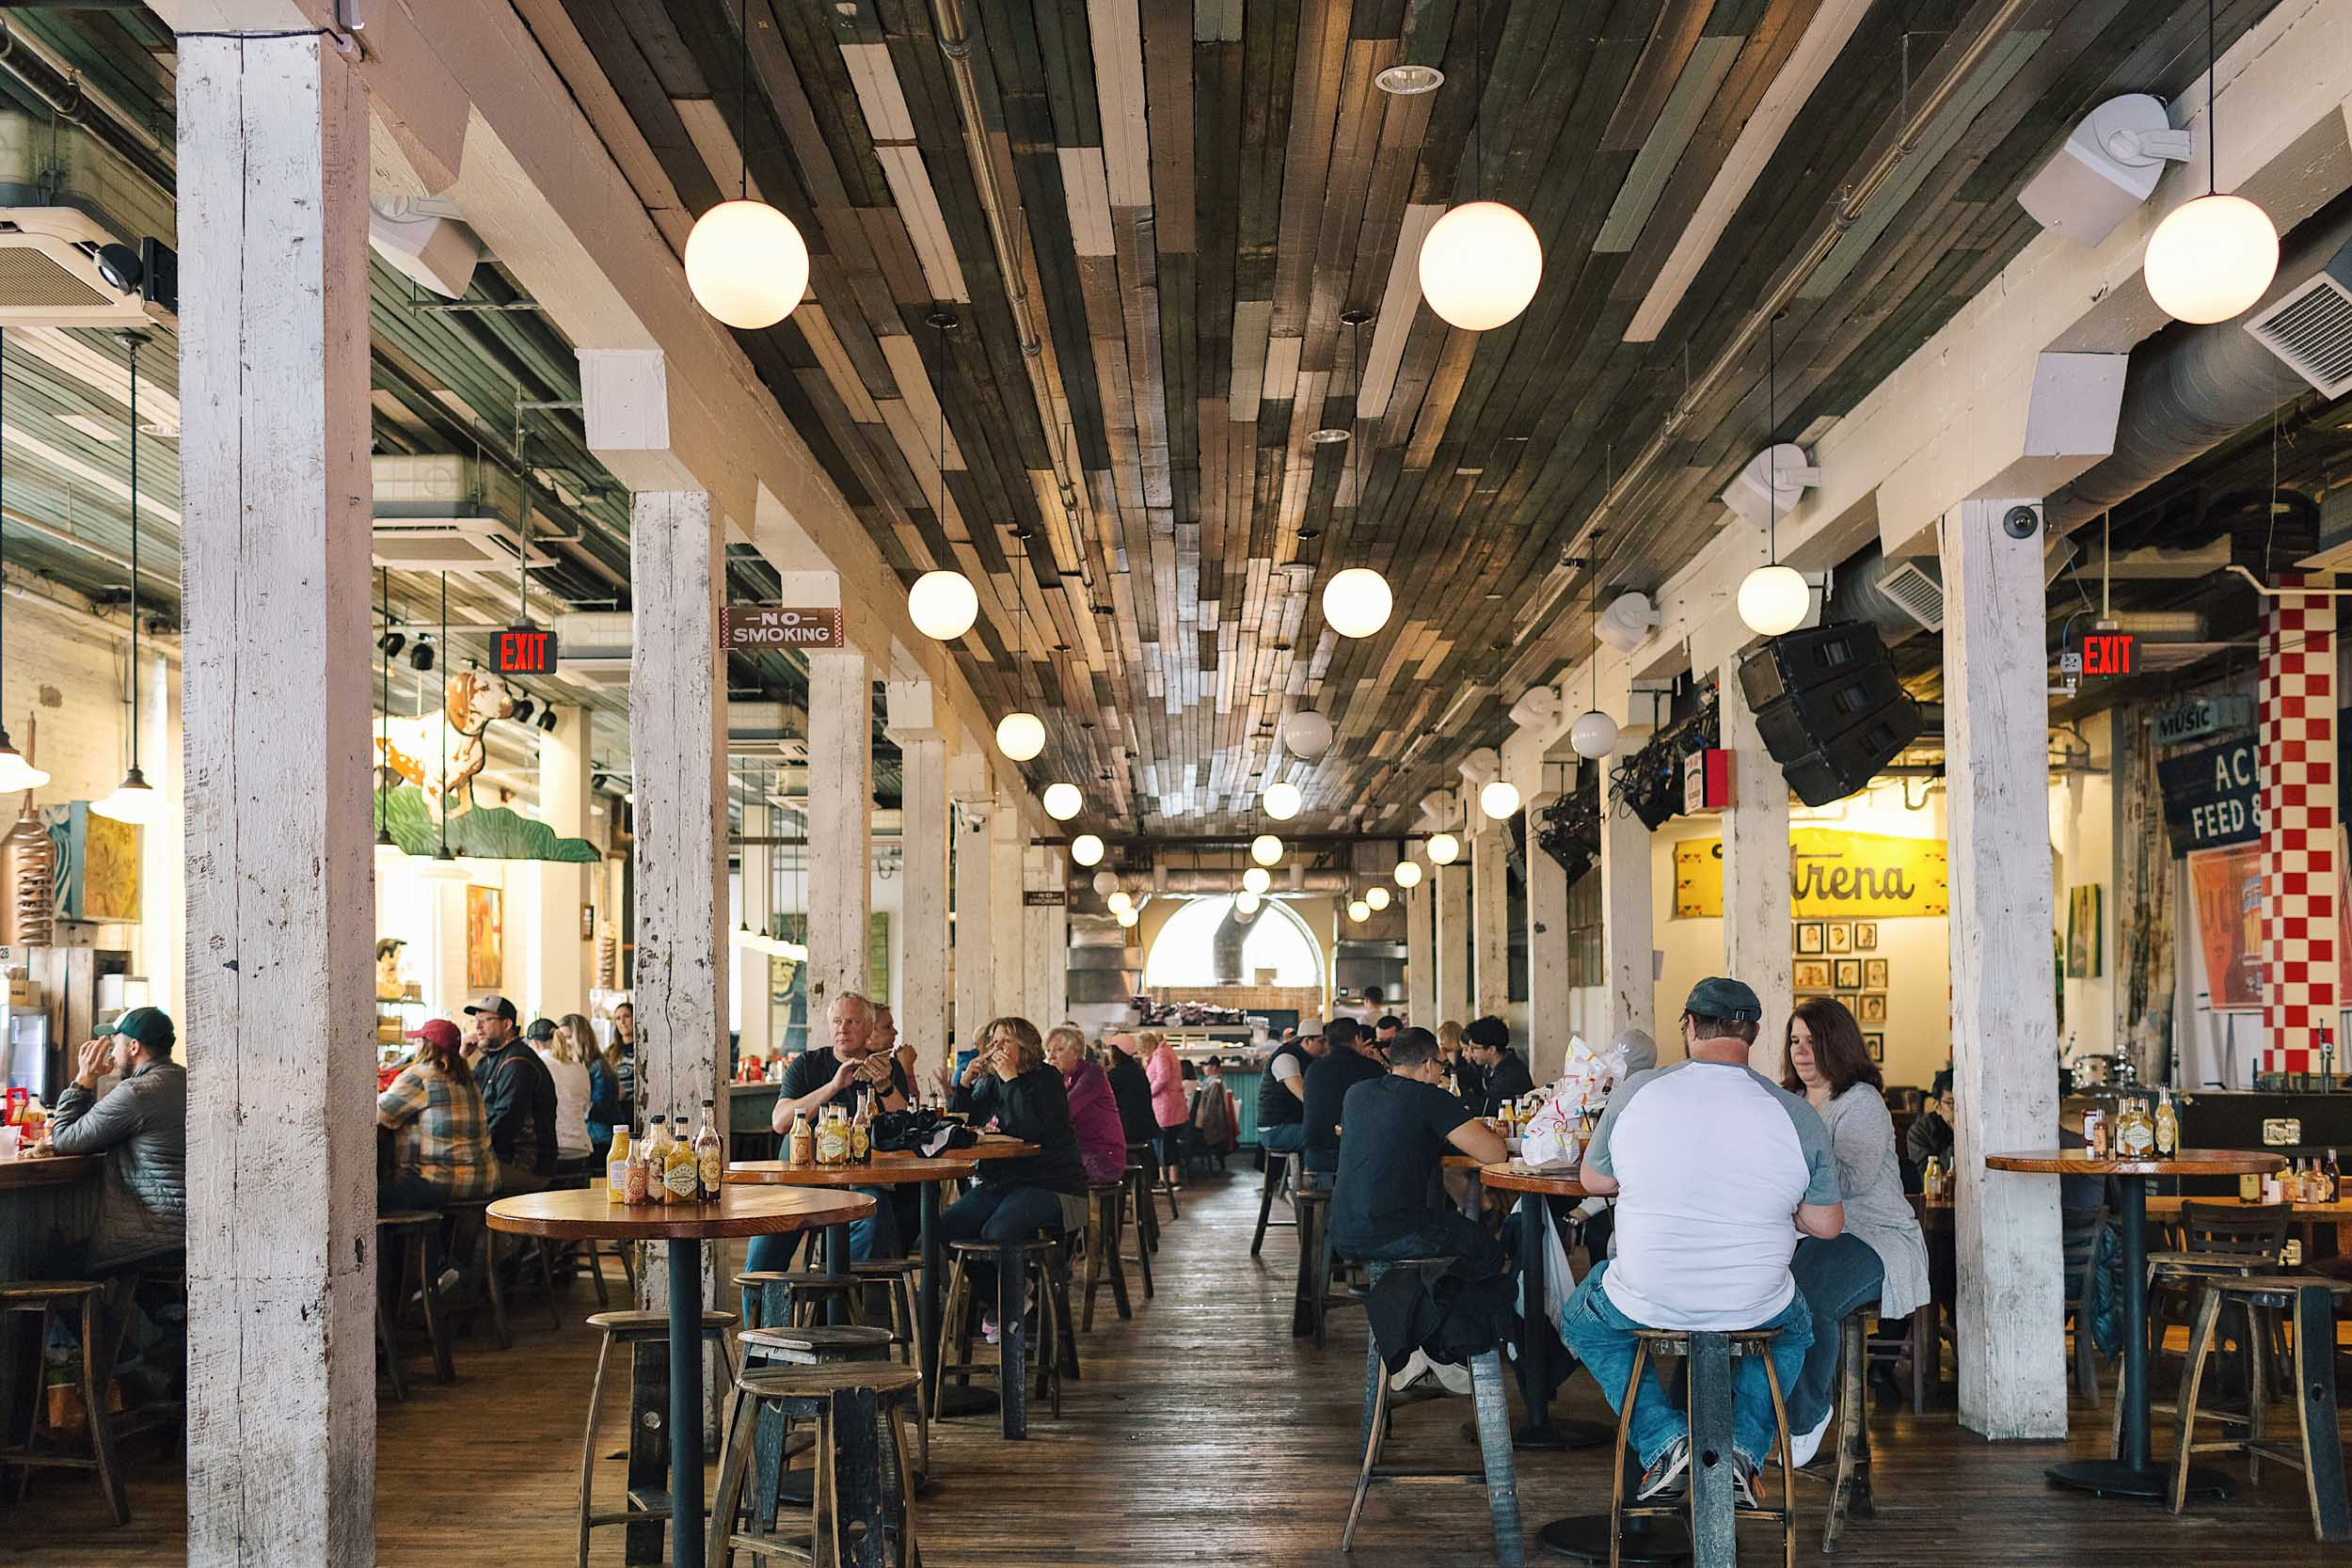 The first floor of Acme Feed & Seed a honkytonk style restaurant with food and beer to be eaten on communal tables.